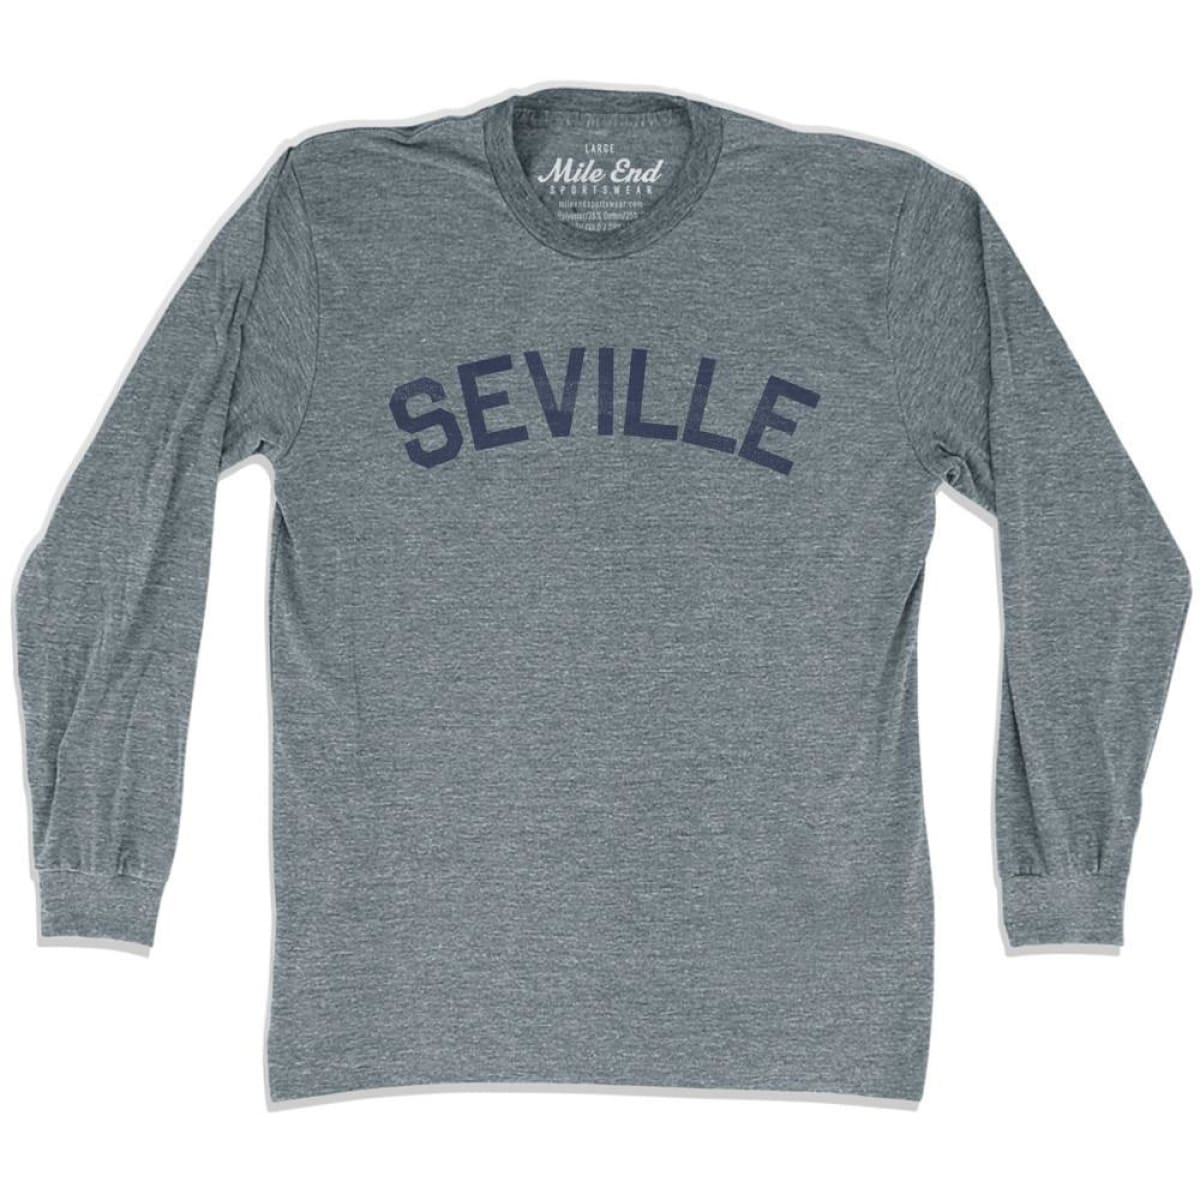 Seville City Vintage Long Sleeve T-Shirt - Athletic Grey / Adult X-Small - Mile End City